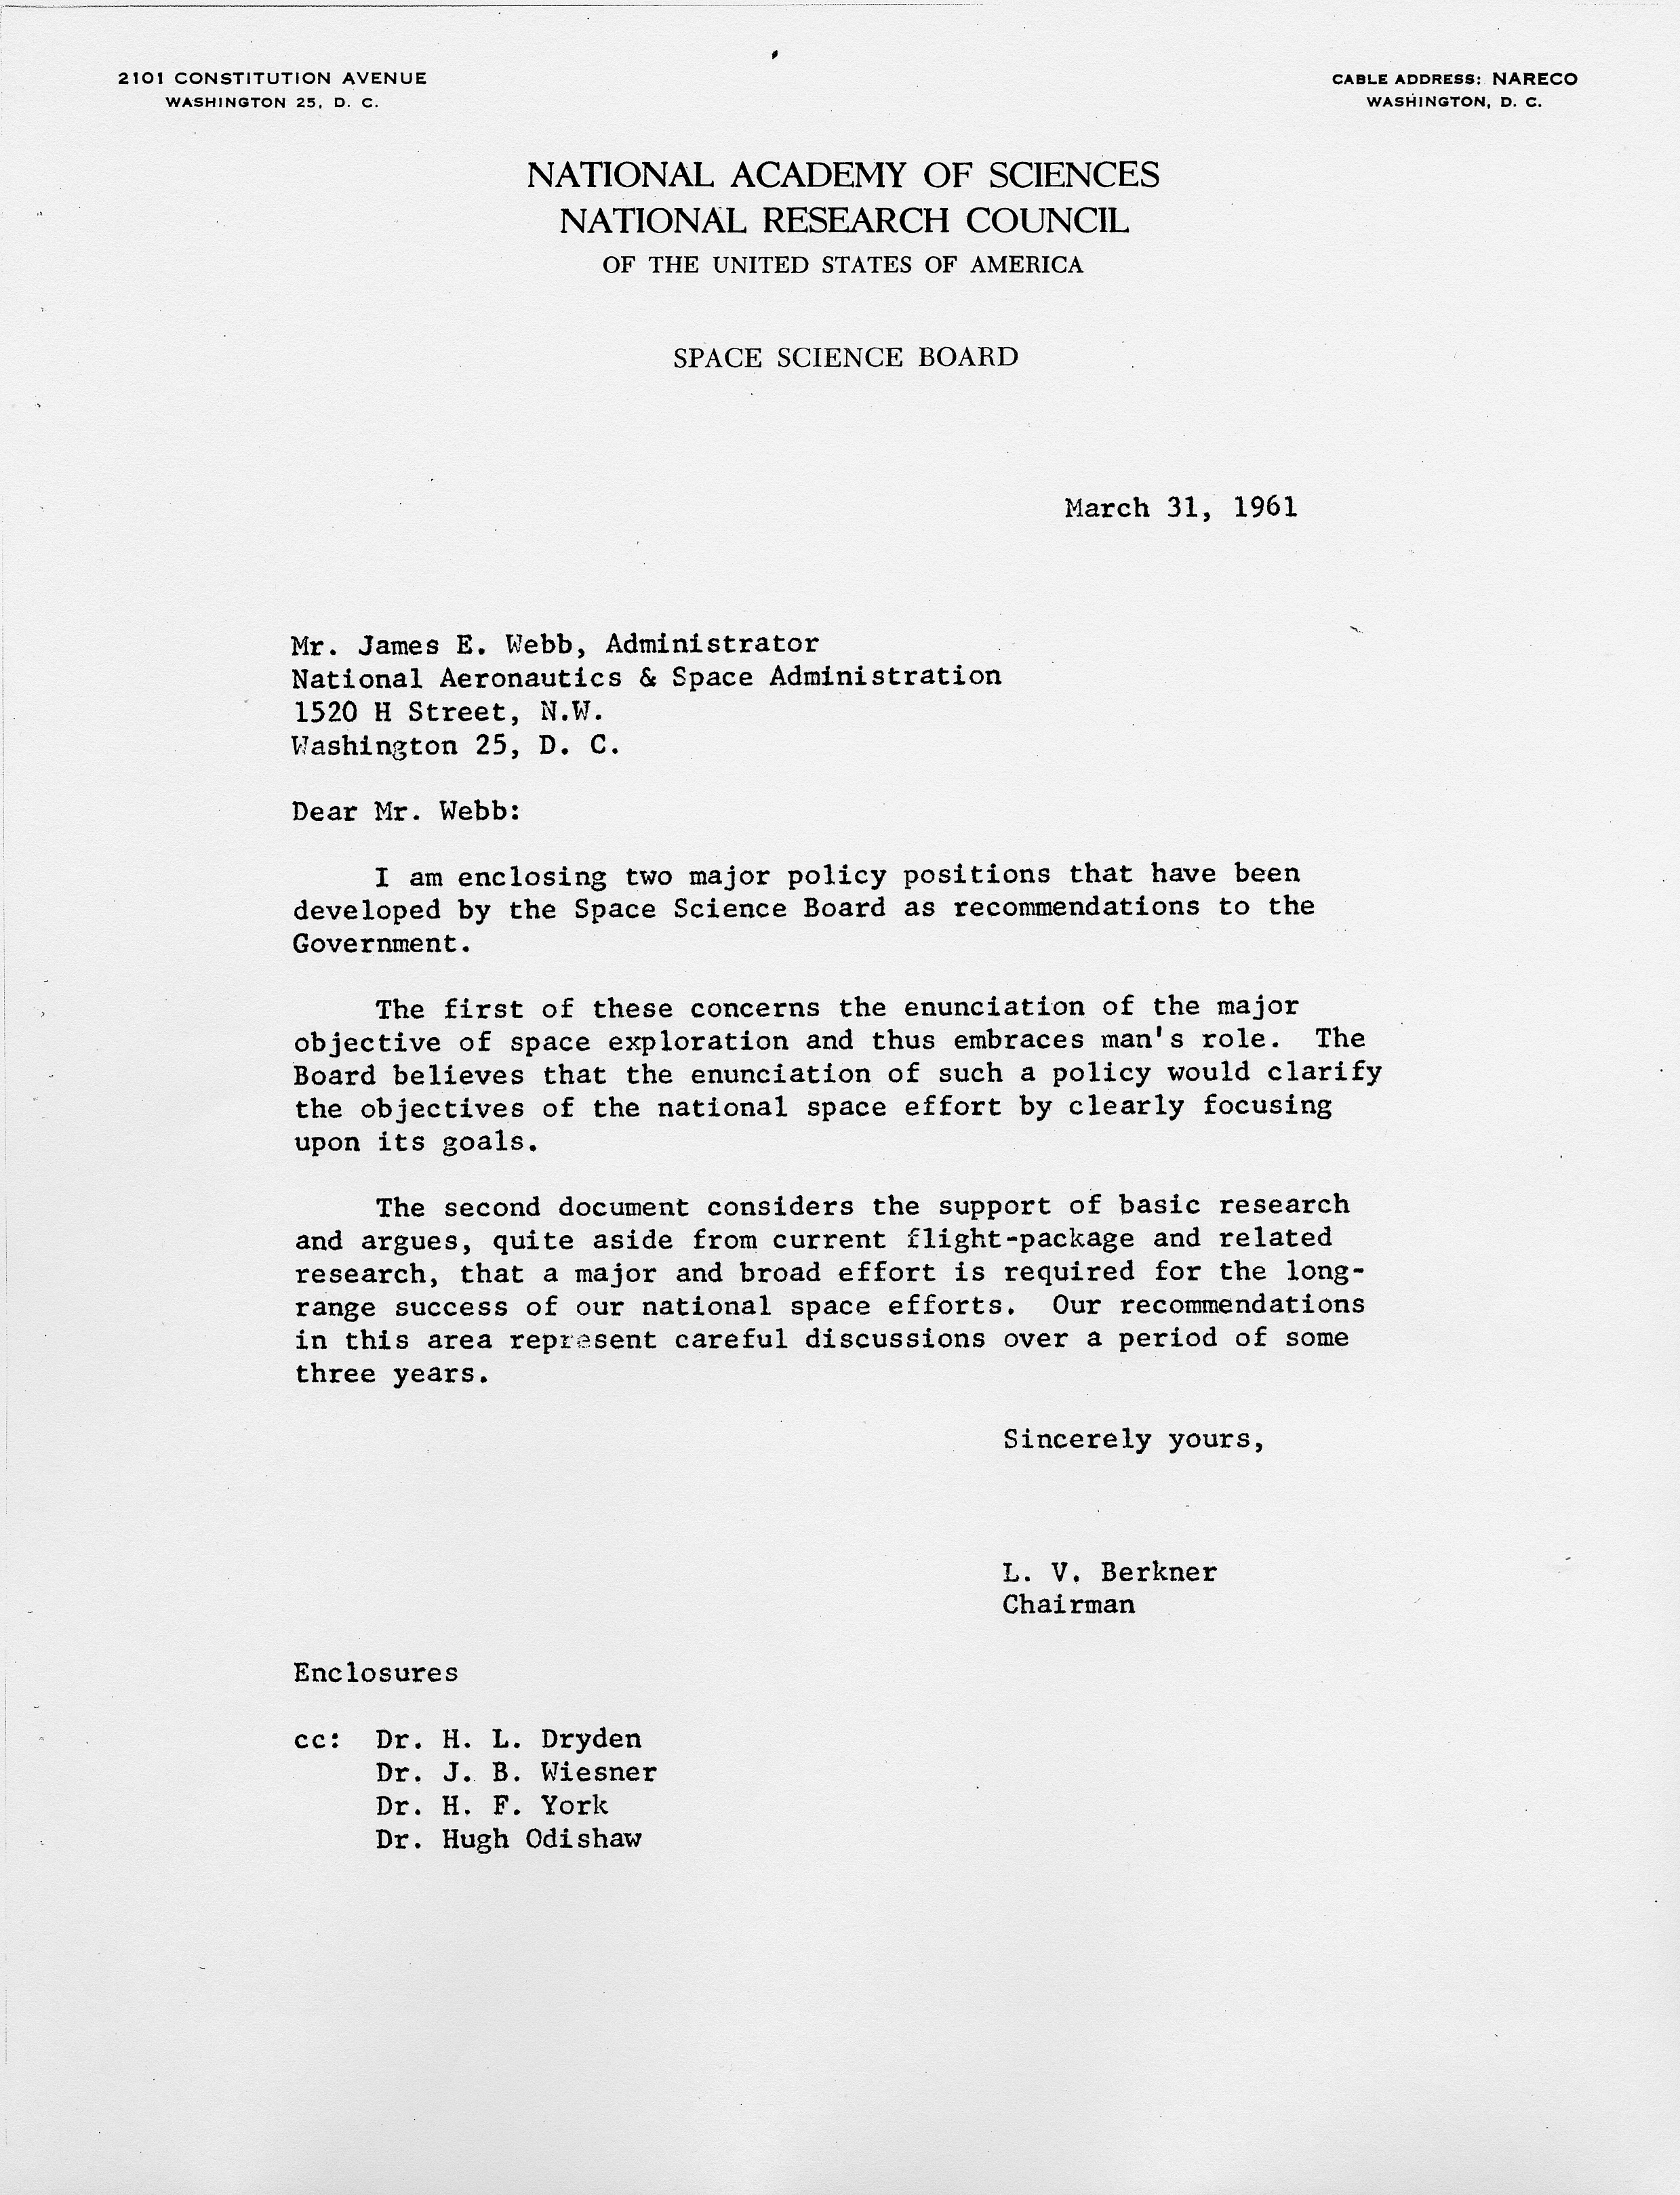 space science board 31 march 1961 letter report to nasa